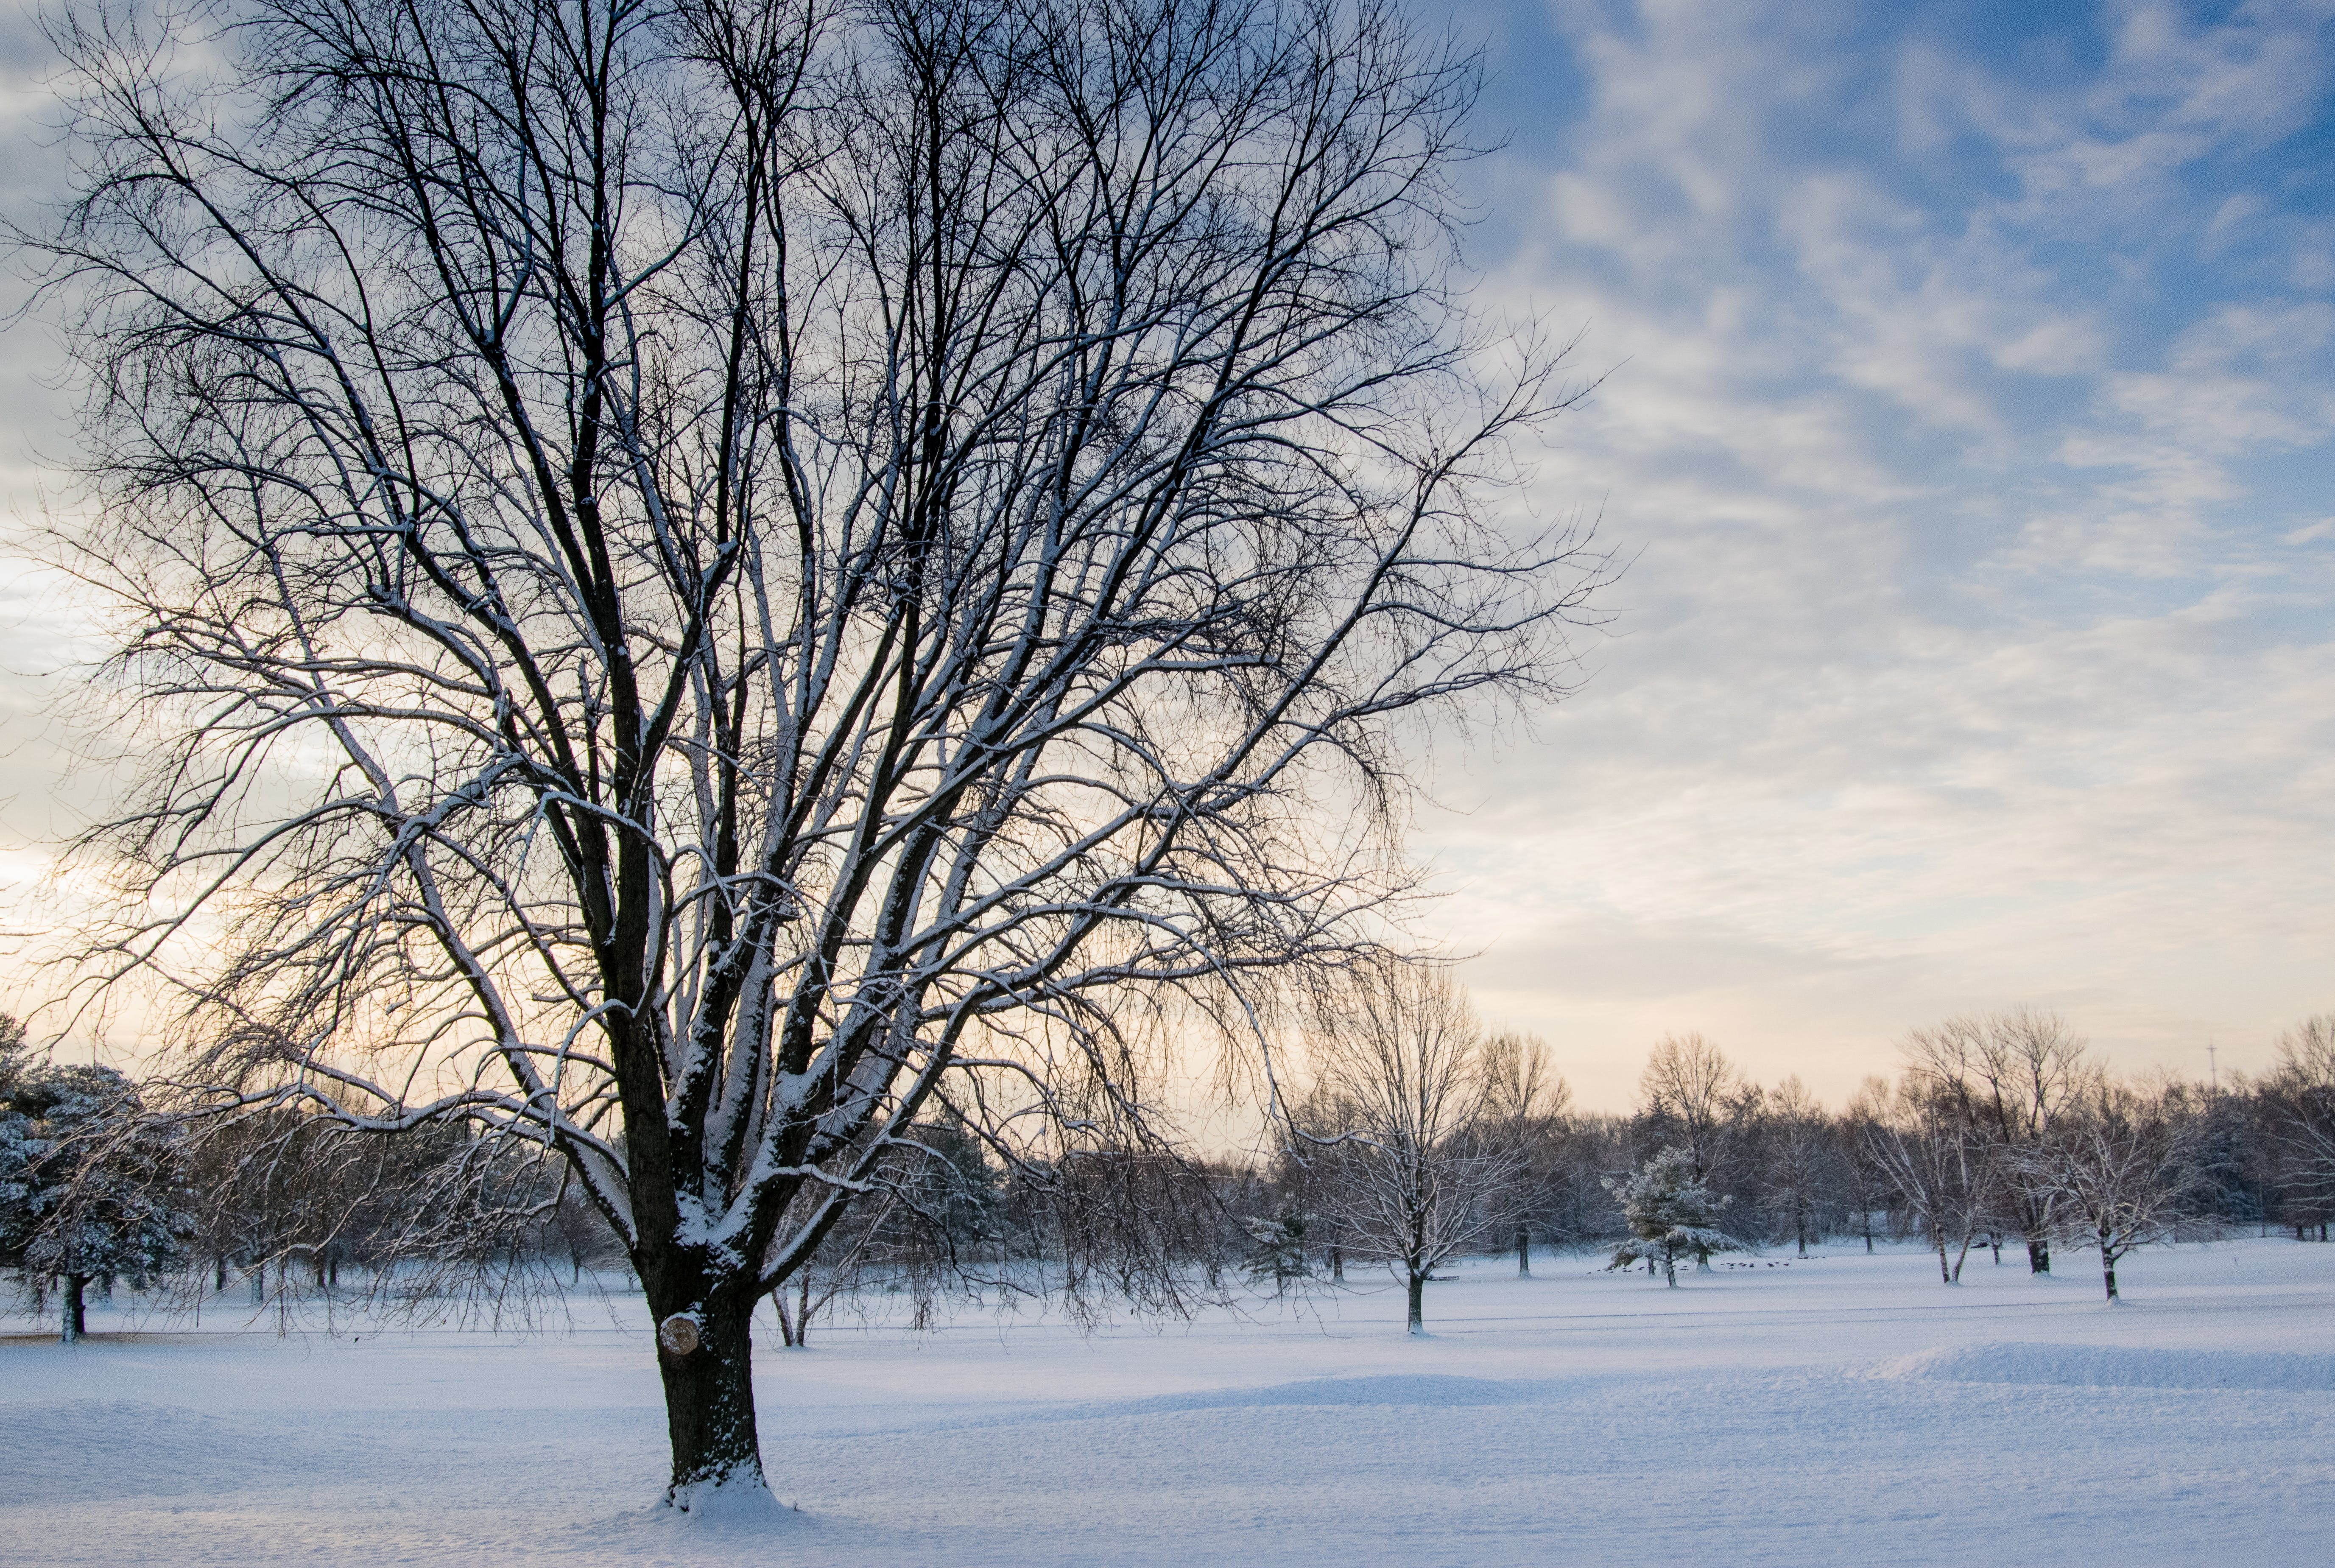 Leafless Tree Covered in Snow